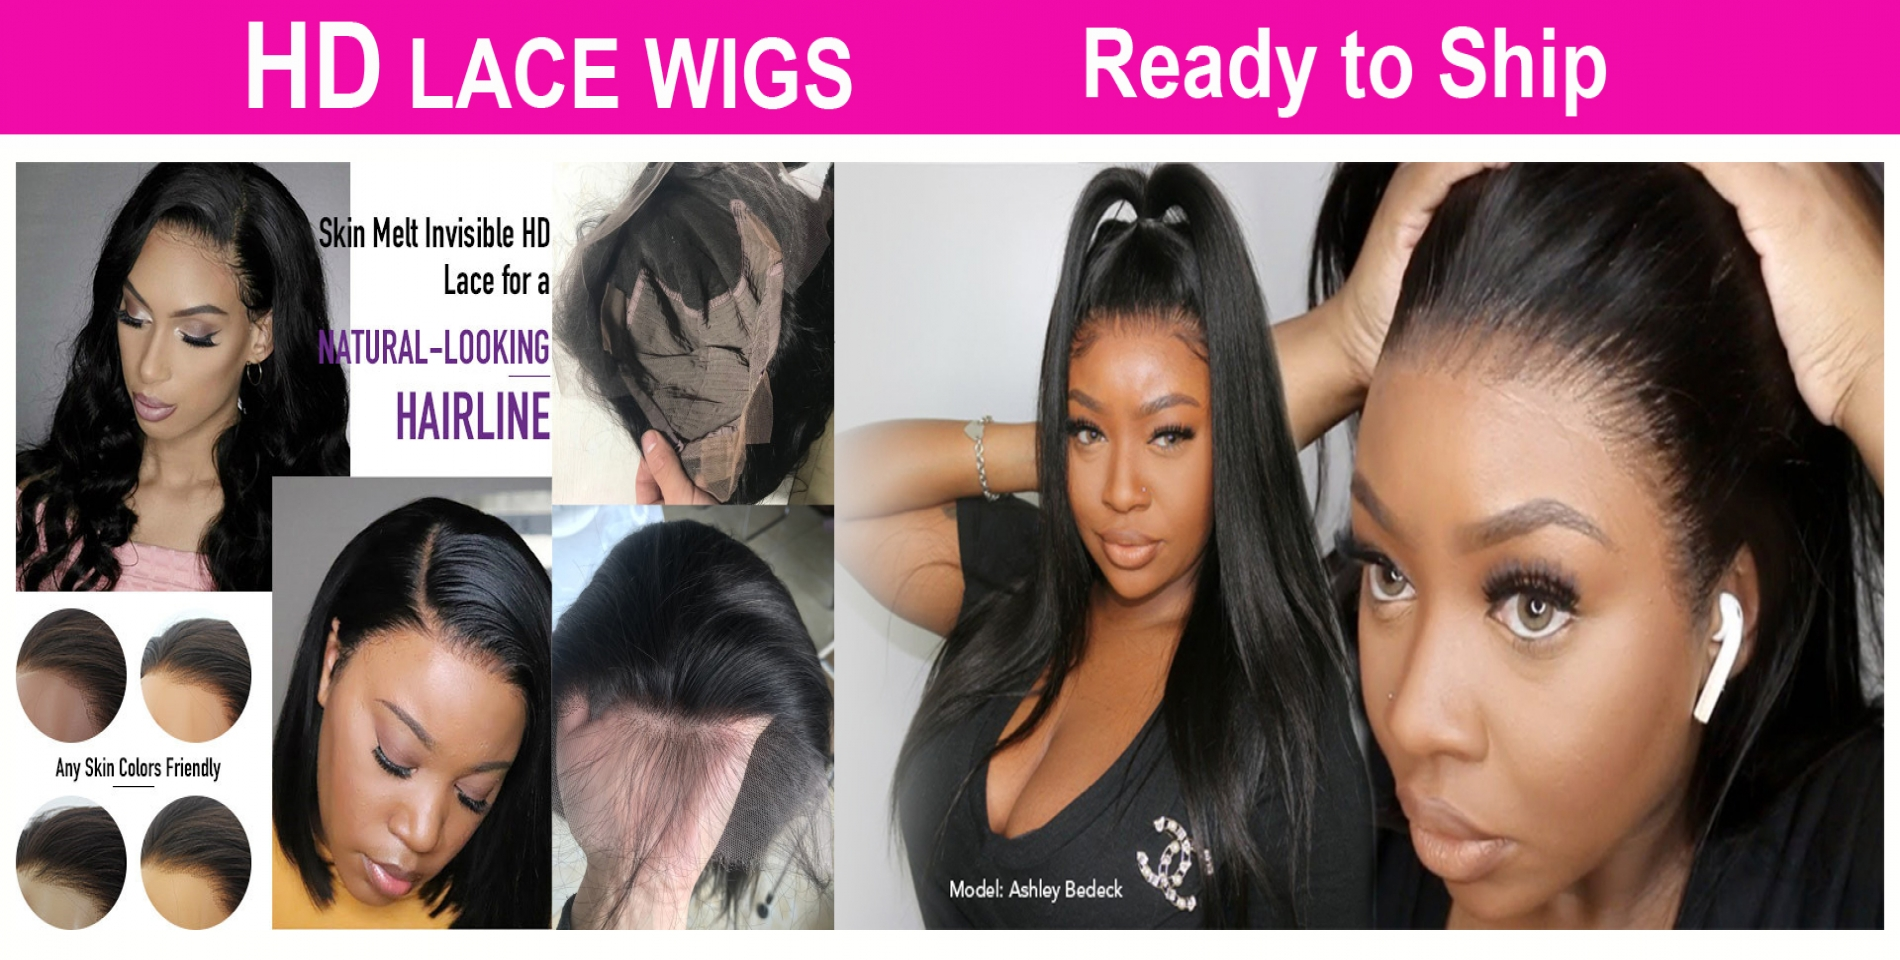 https://www.oceanwigs.com/hd-undetectable-13-6-lace-front-wig-150-straight.html